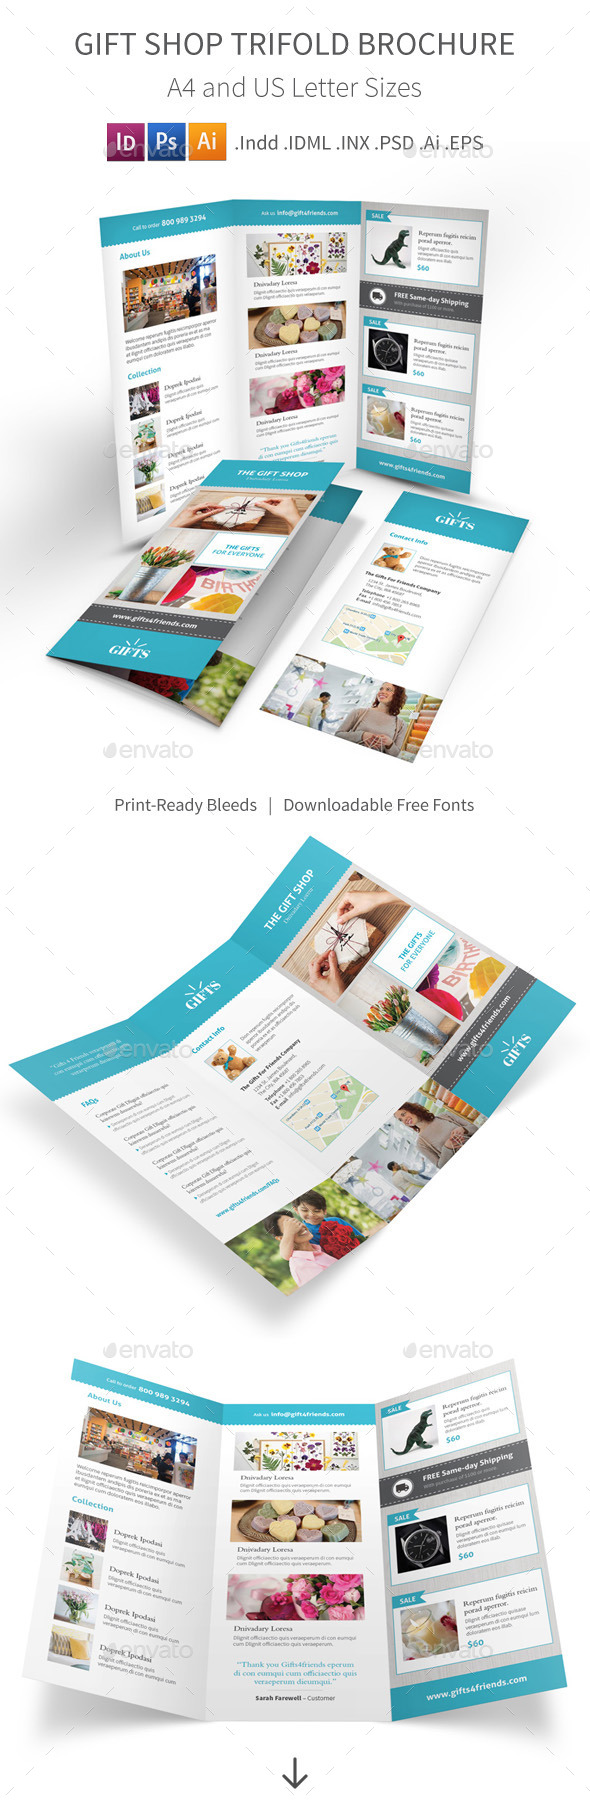 GraphicRiver Gift Shop Trifold Brochure 11830757